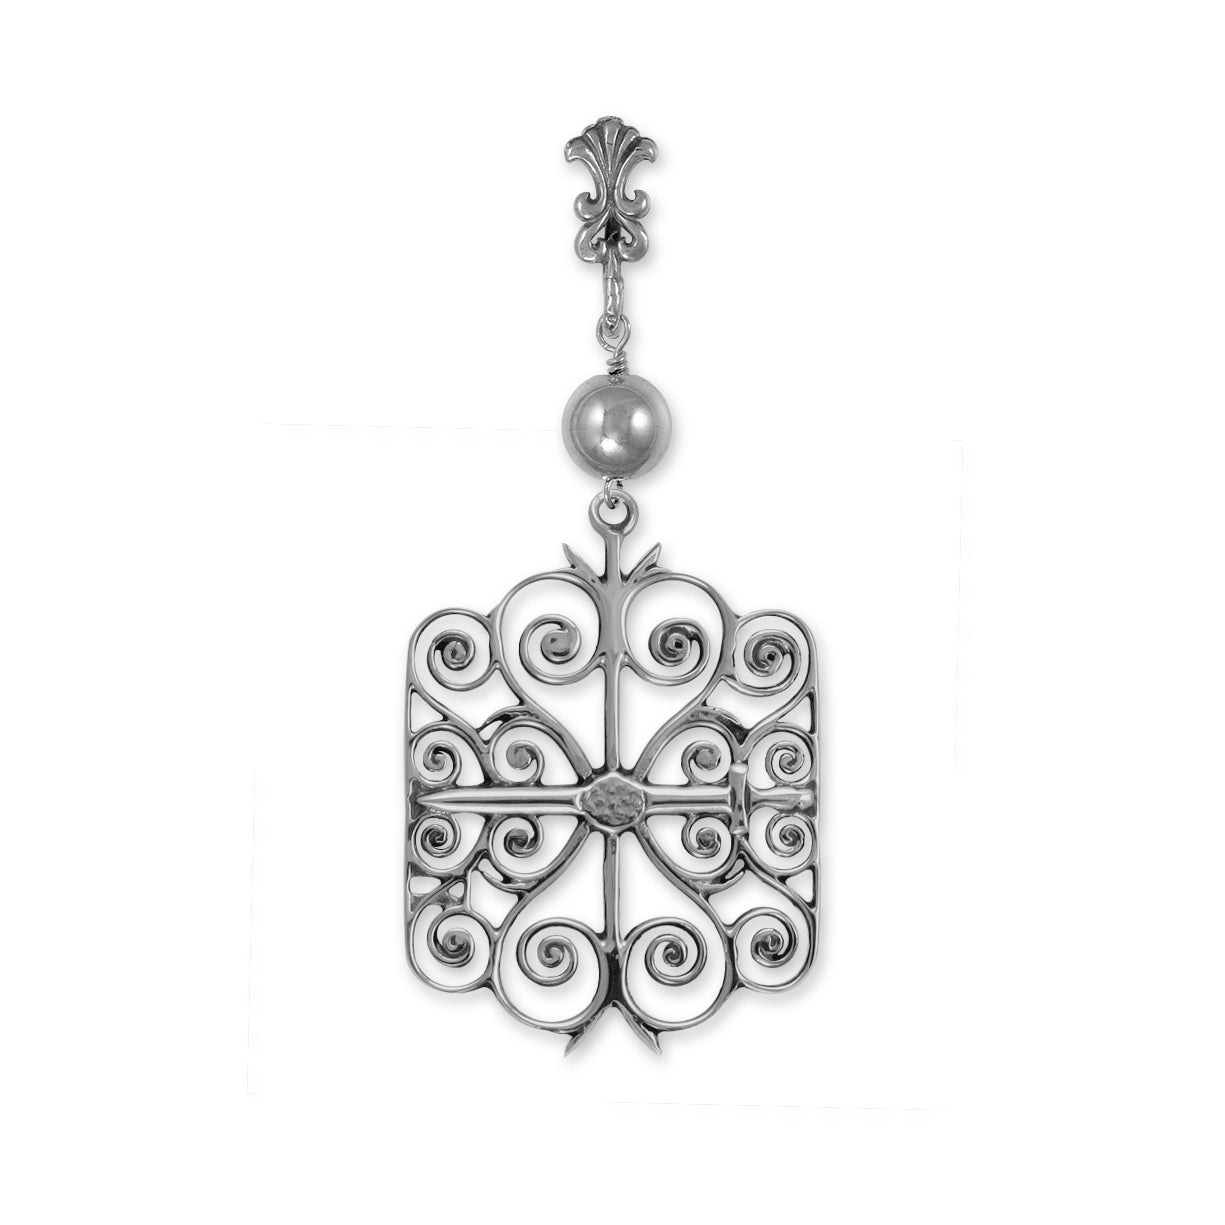 Citadel Large Pendant w/ Bead and Fleur